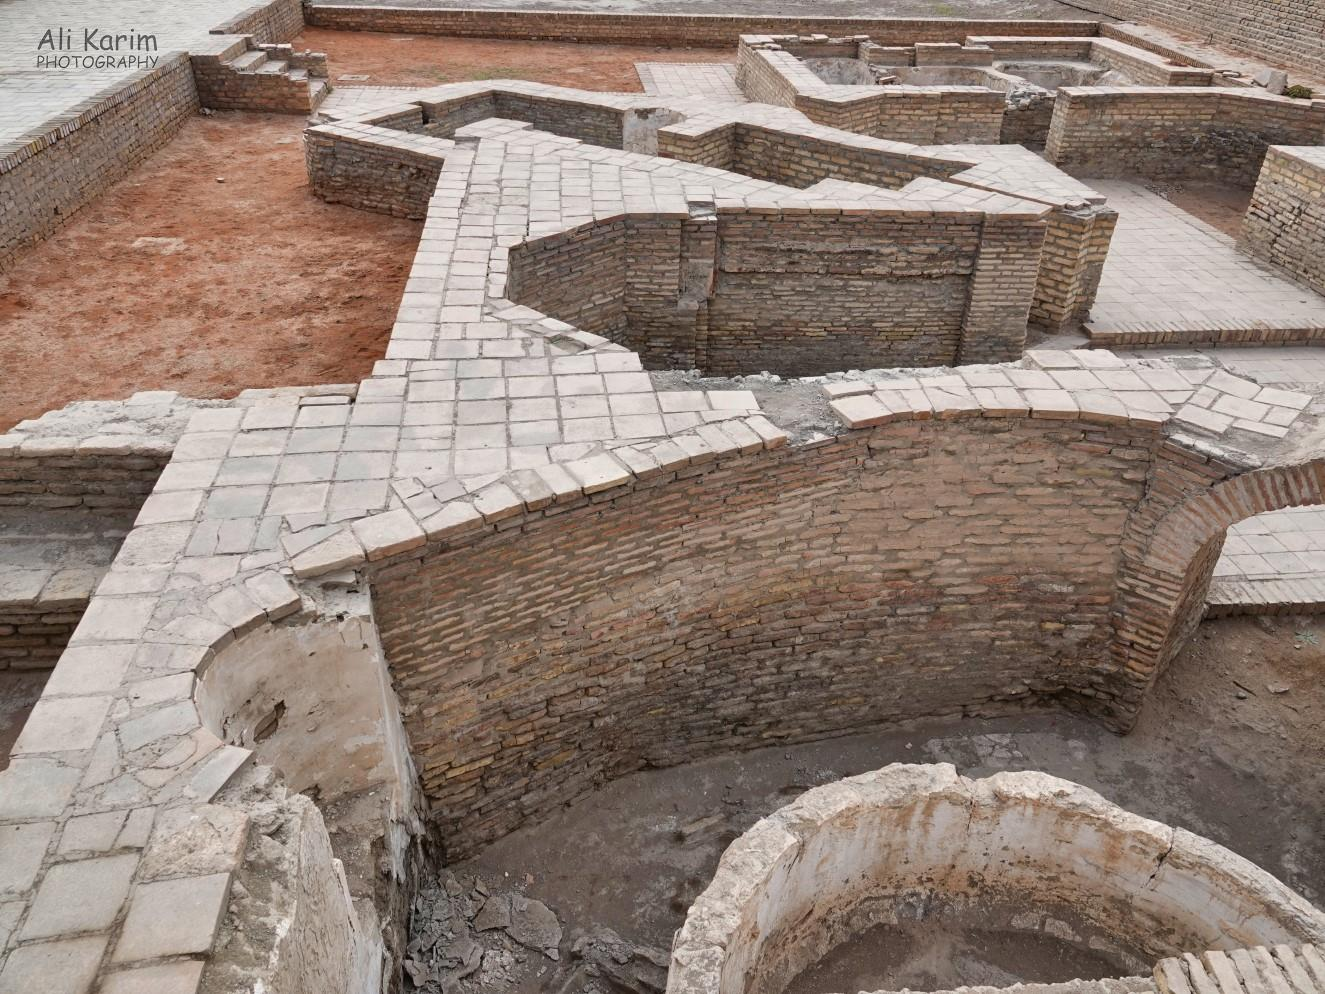 Bukhara, Oct 2019, Remains of bath houses and caranvarasai that were excavated in the old town center